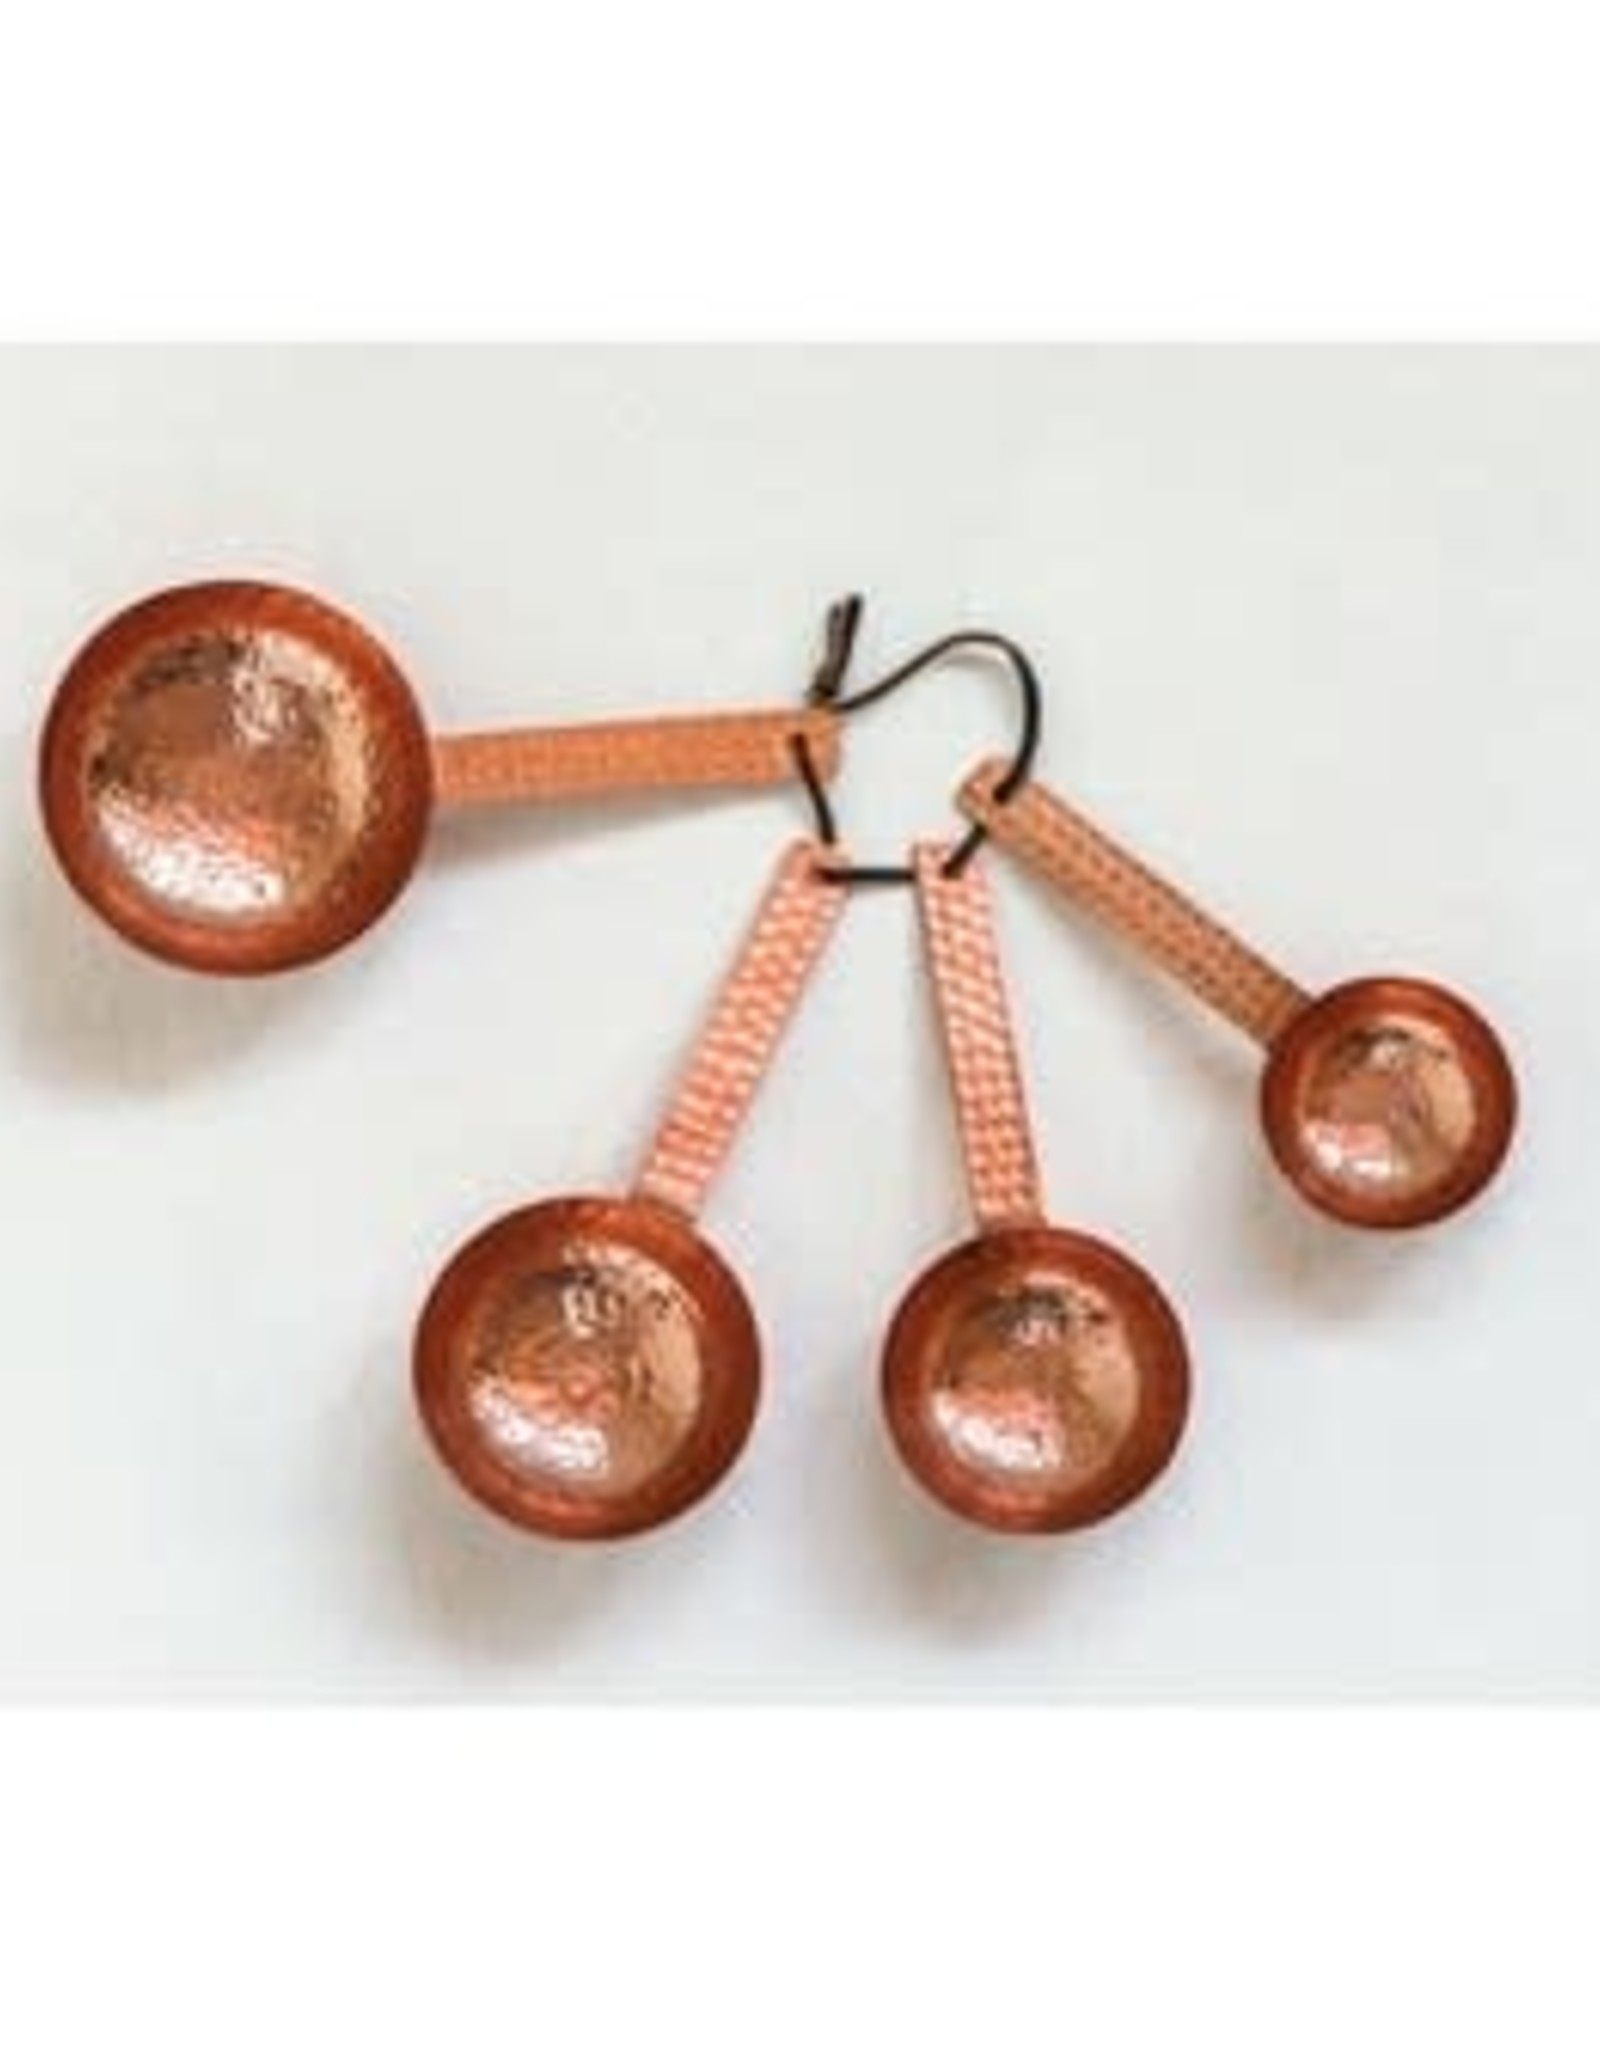 Copper Spoons (Set of 4)